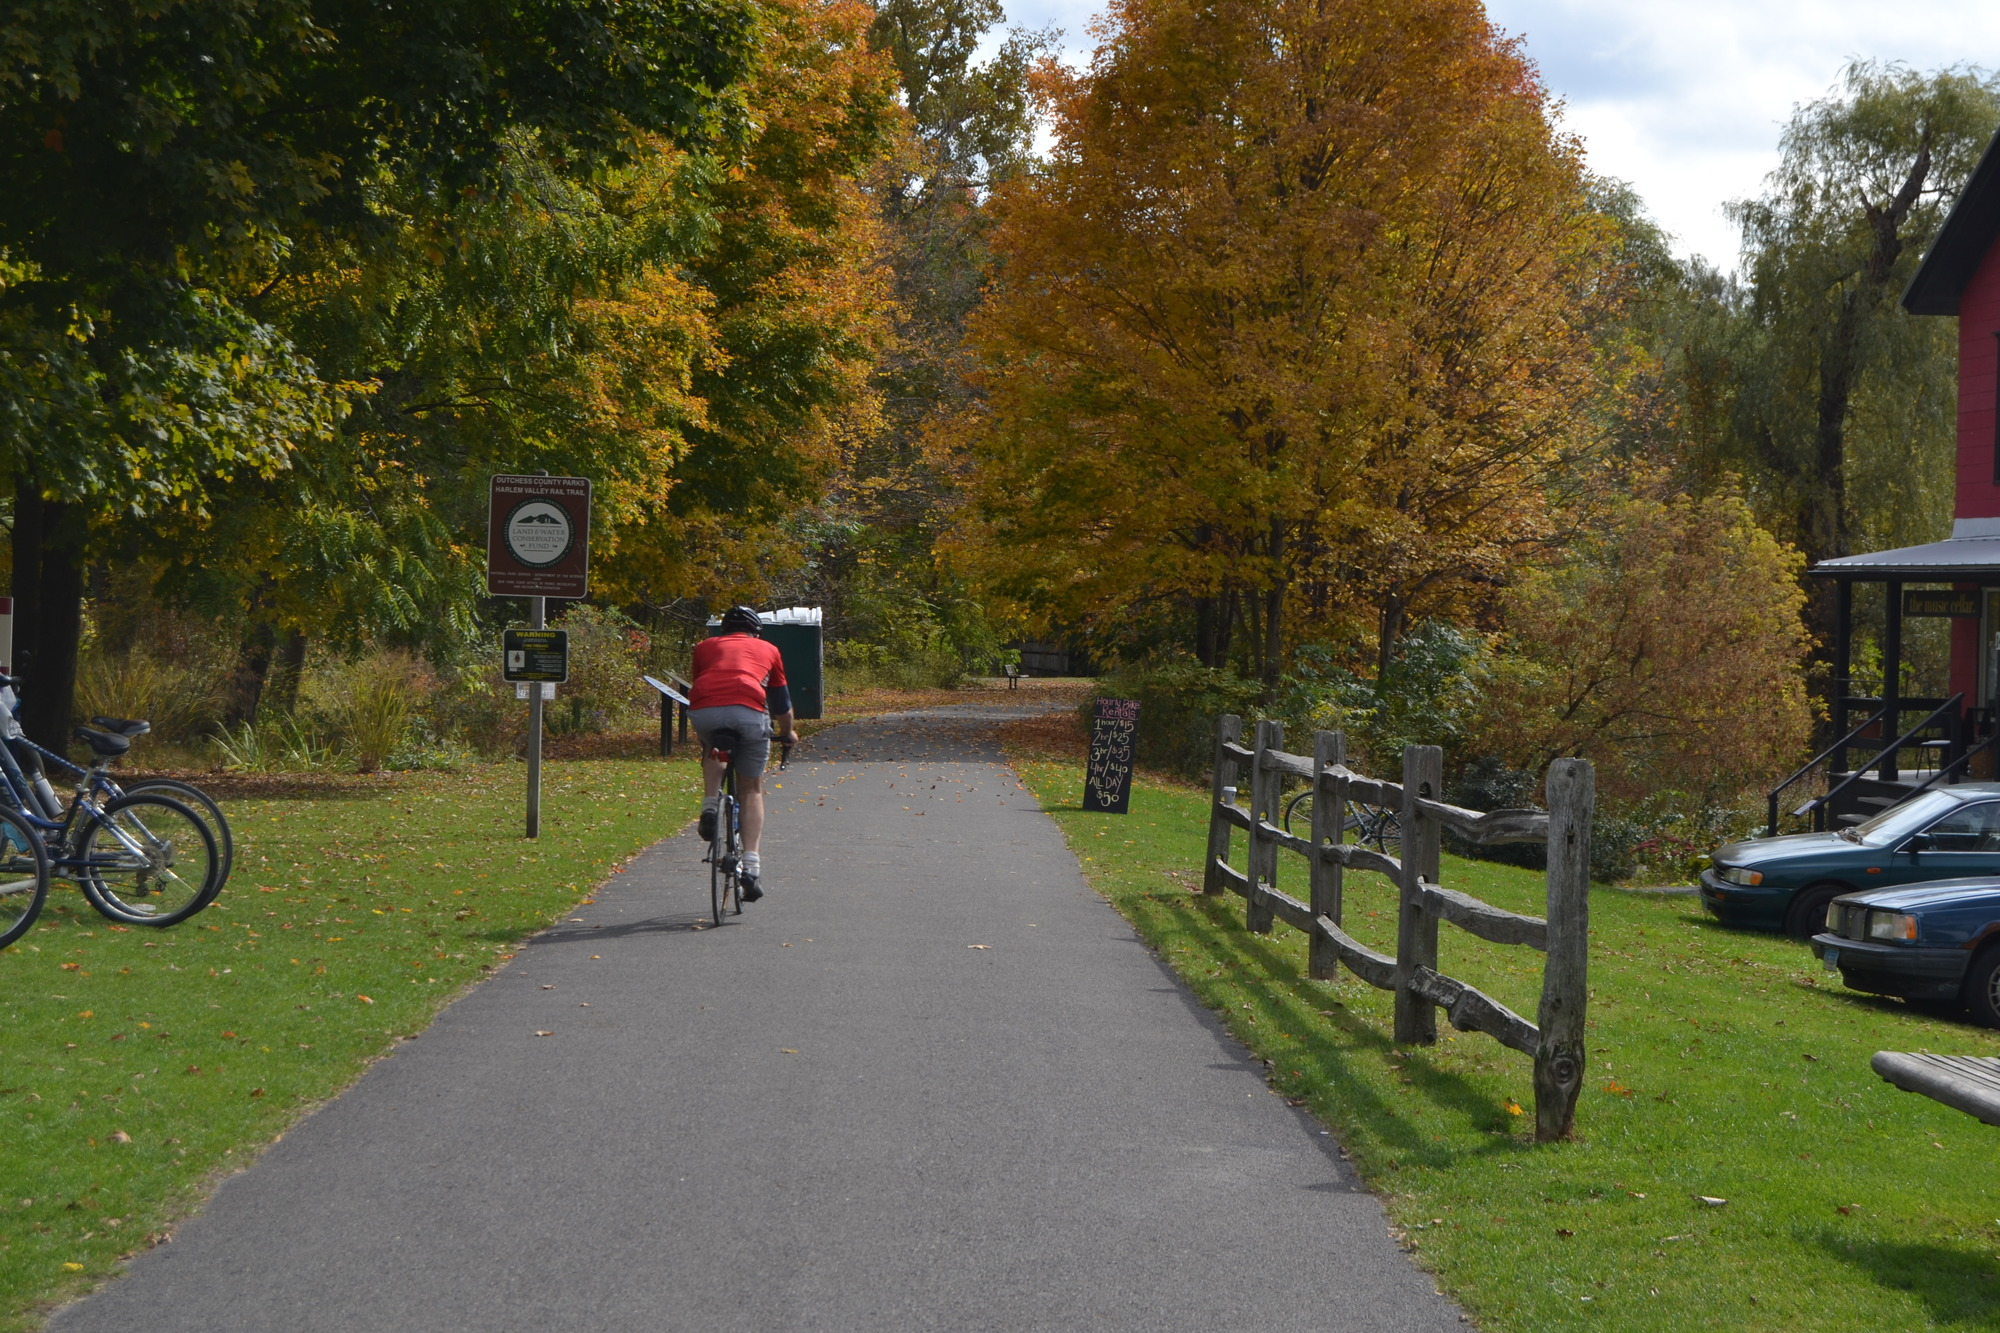 Construction for Harlem Valley Rail Trail extension has begun